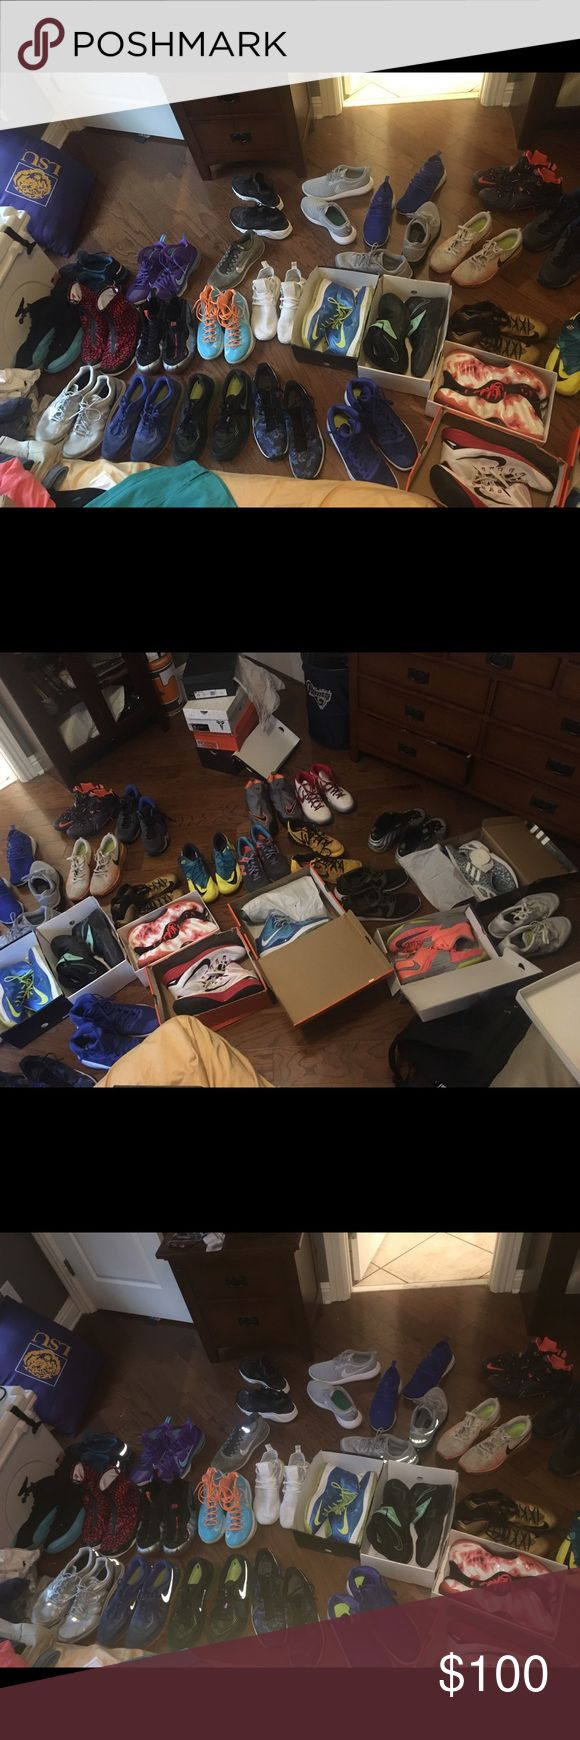 Men's shoes size 13 and 14 Jordan's. Foams. Kobes. KDs. Kyries. Lebron. NMD. Yeezys. Air max. Roshe. Huaraches. Prestos. Cole Haan. Make offers. Shoes